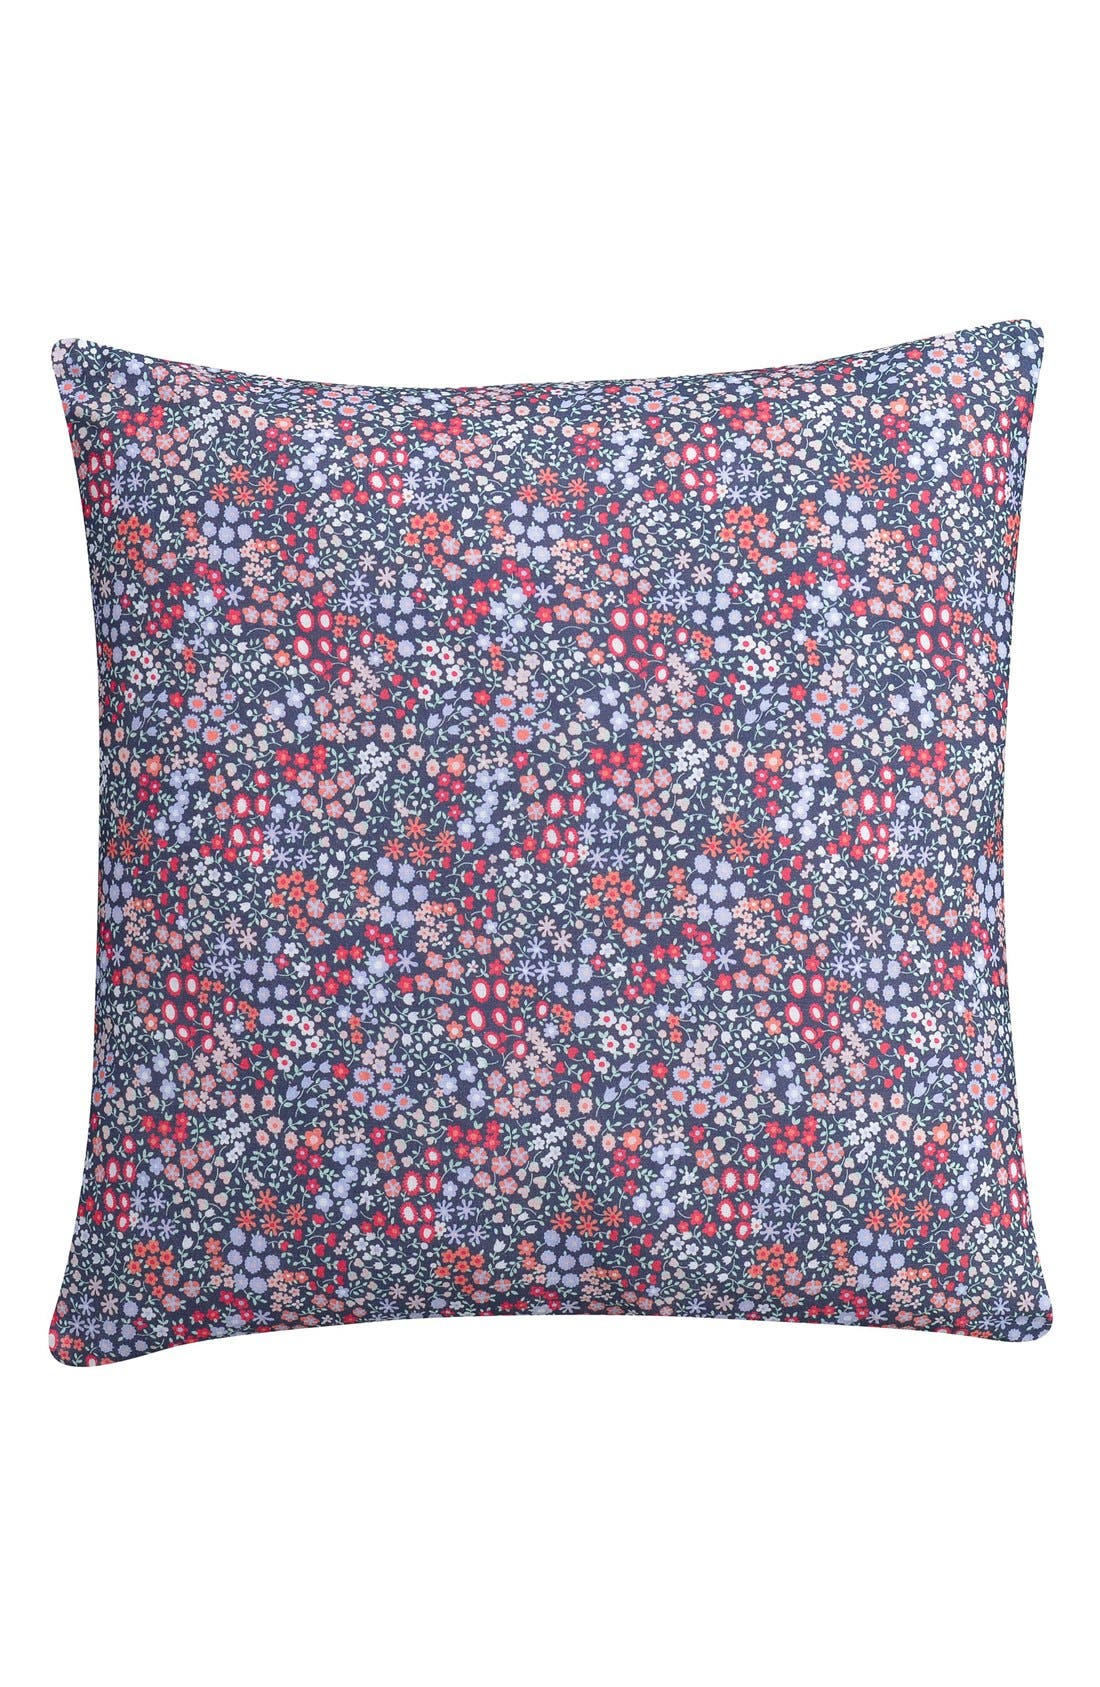 Alternate Image 1 Selected - cupcakes and cashmere 'Sketch' Floral Print Accent Pillow